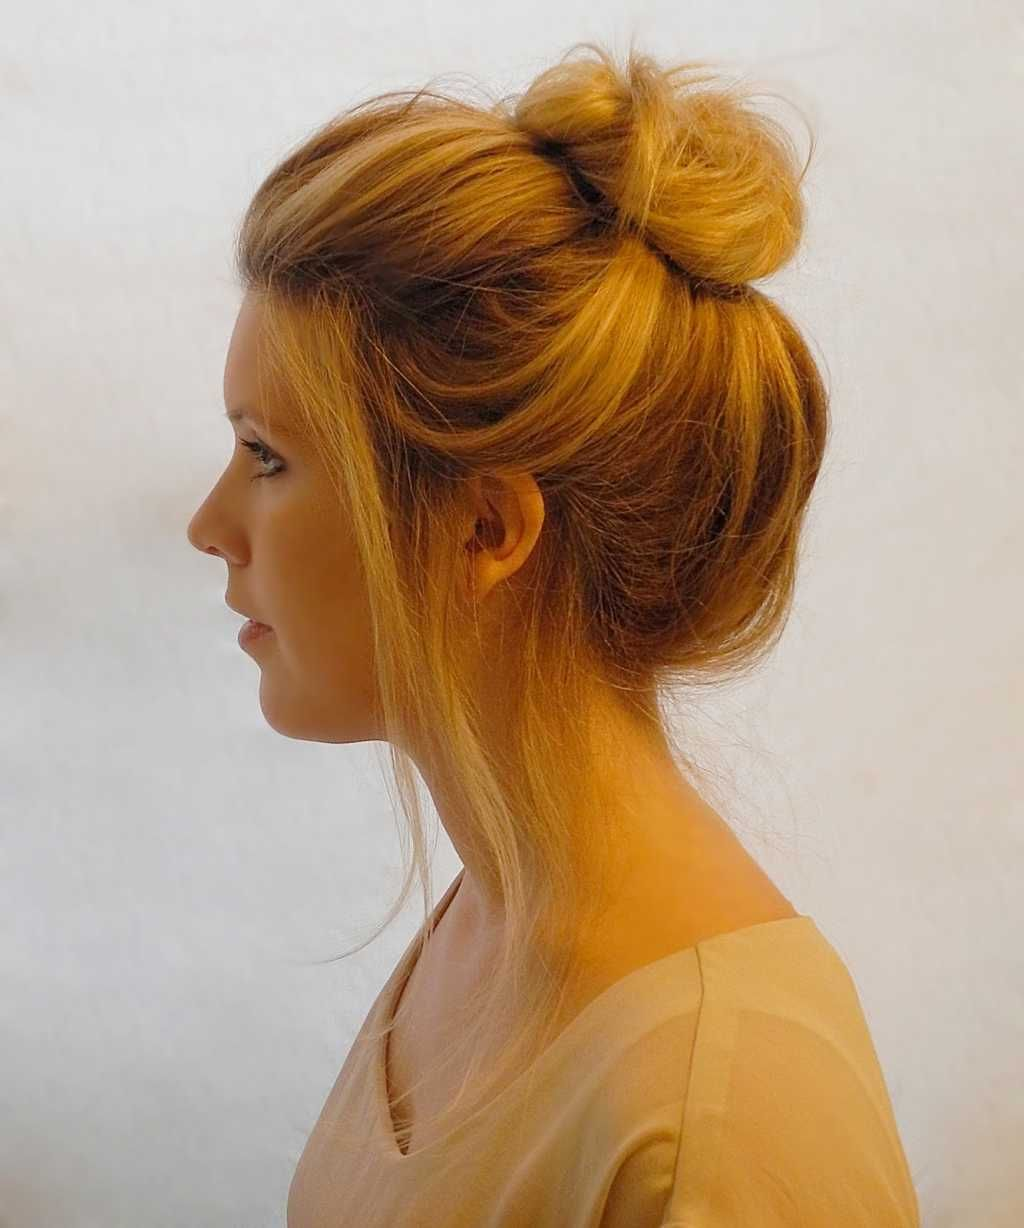 Everyday Bun Hairstyle For Round Face One1lady Com Hair Hairs Hairstyle Hairstyles Classy Hairstyles Bun Hairstyles Hairstyle